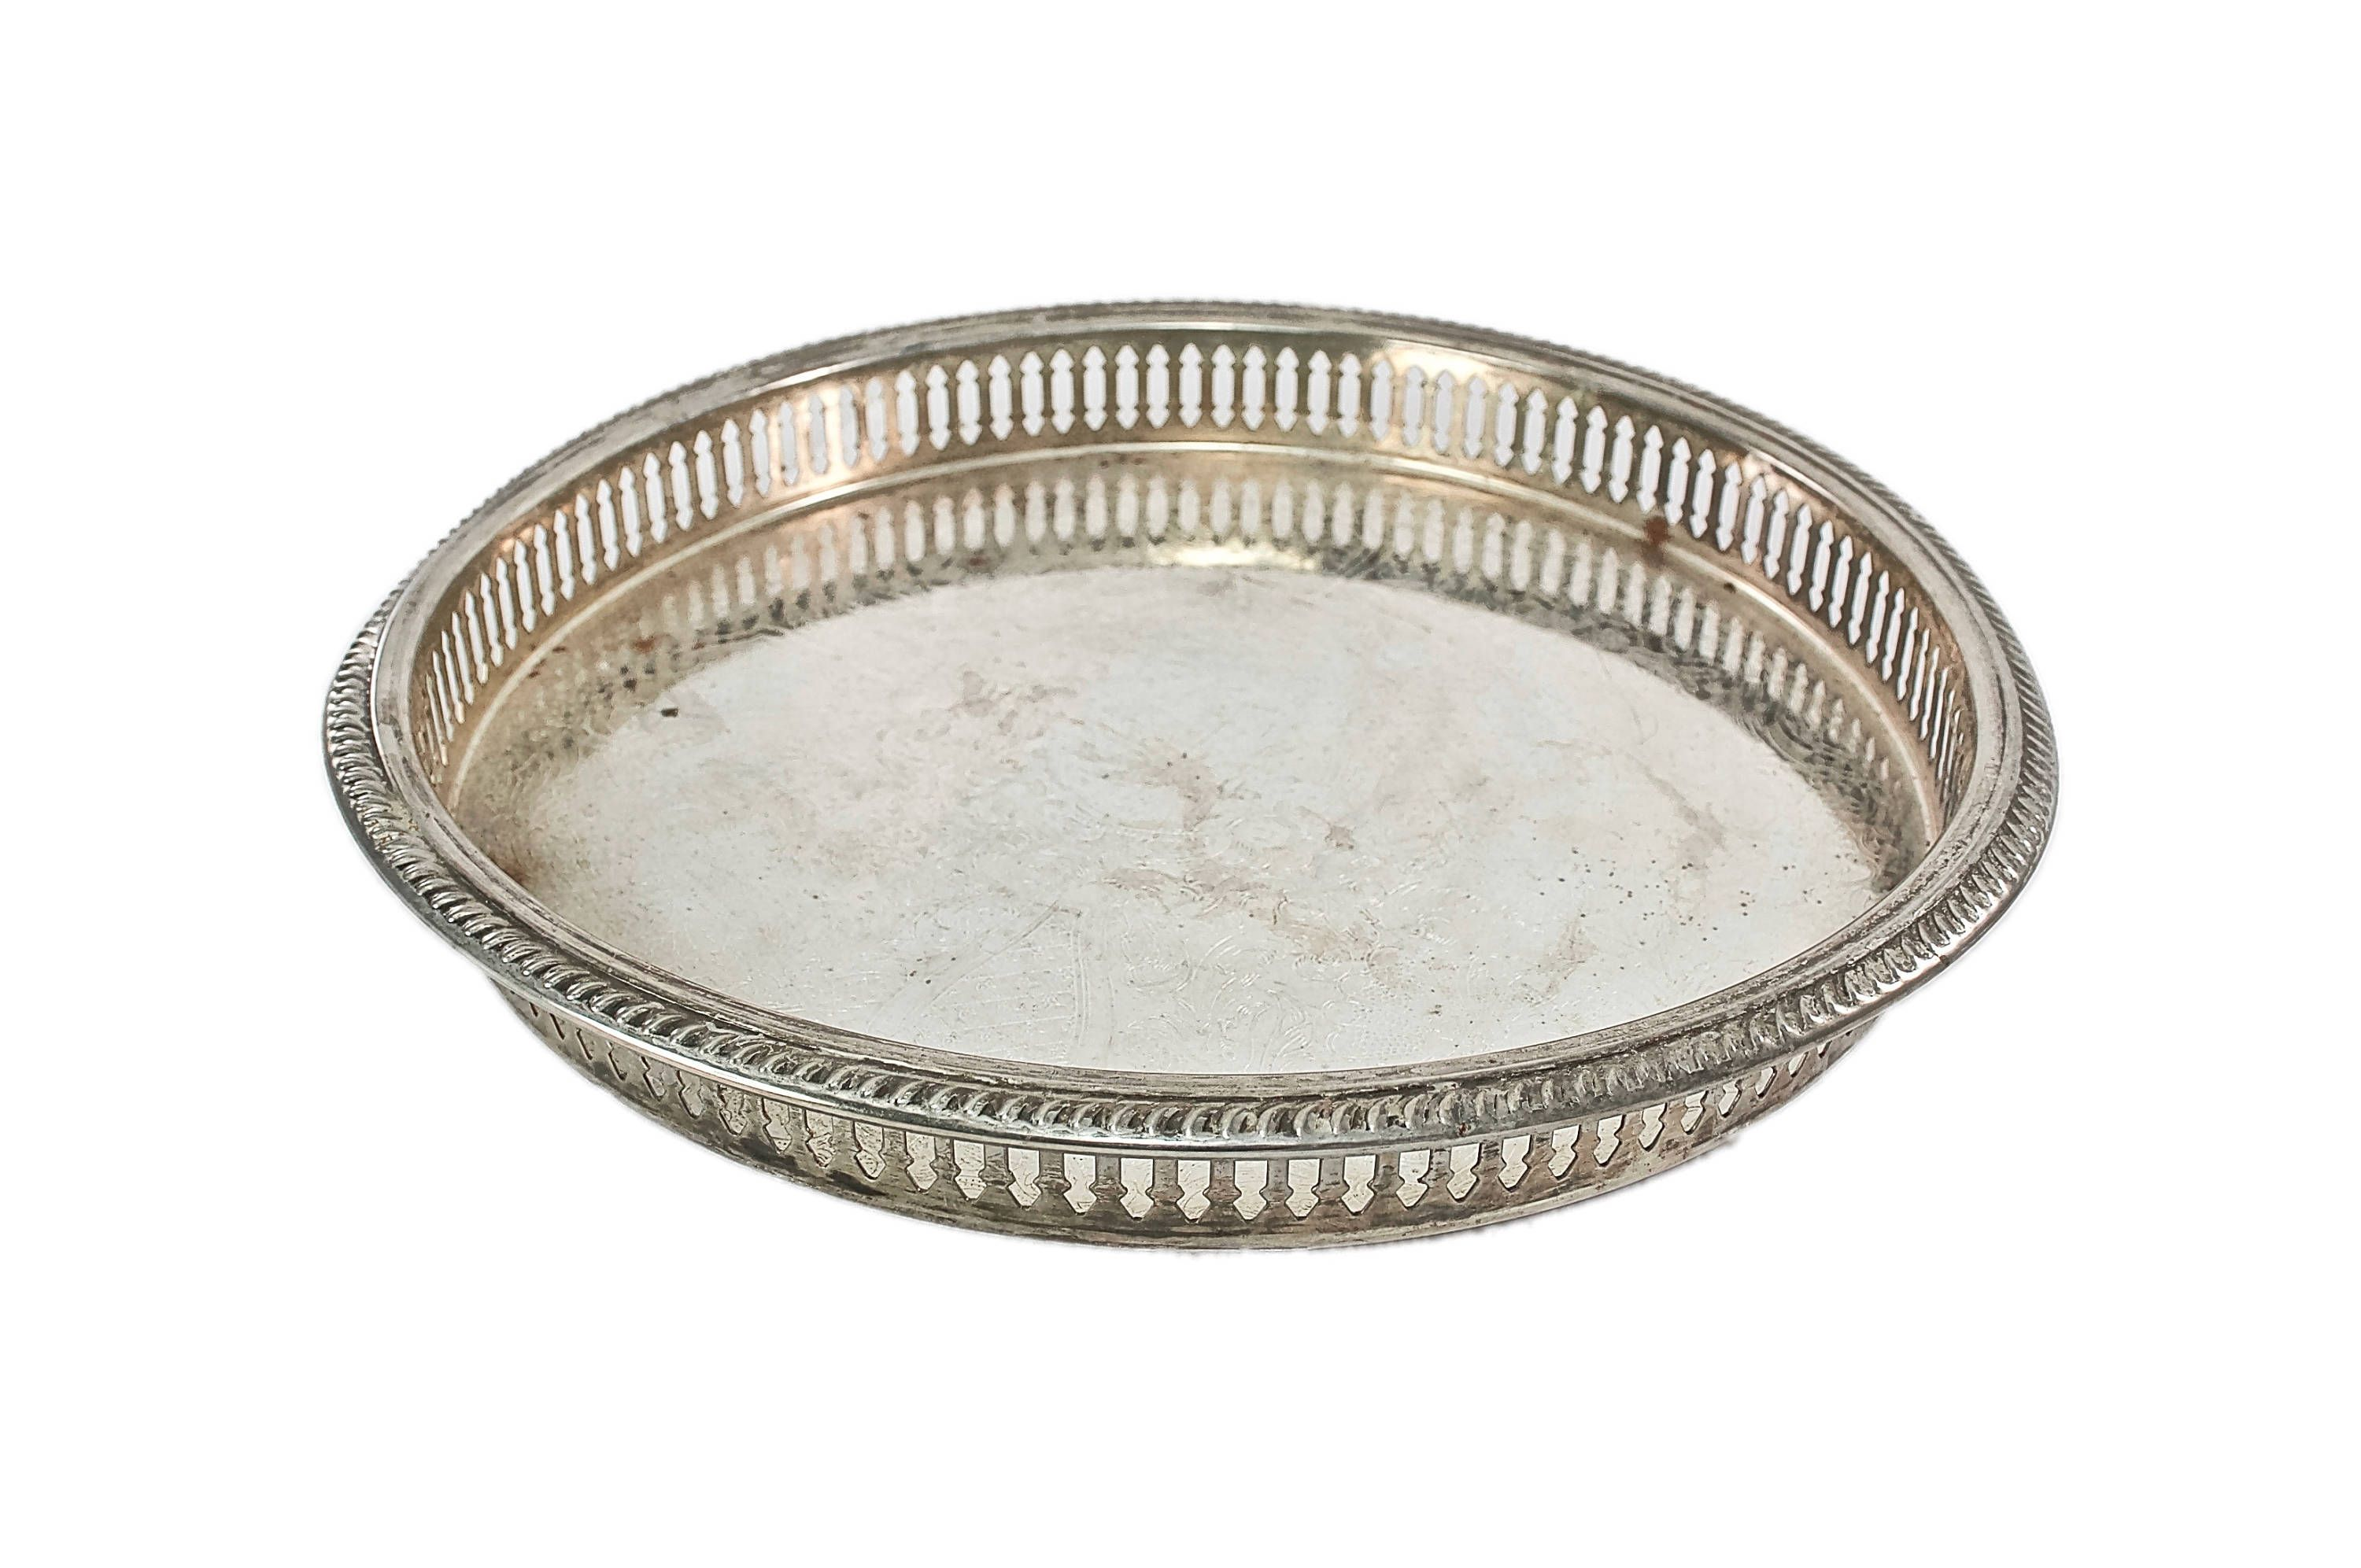 Vintage Silver Gallery Tray-Vintage Vanity Tray-Cocktail Tray-Jewelry  Tray-Bar